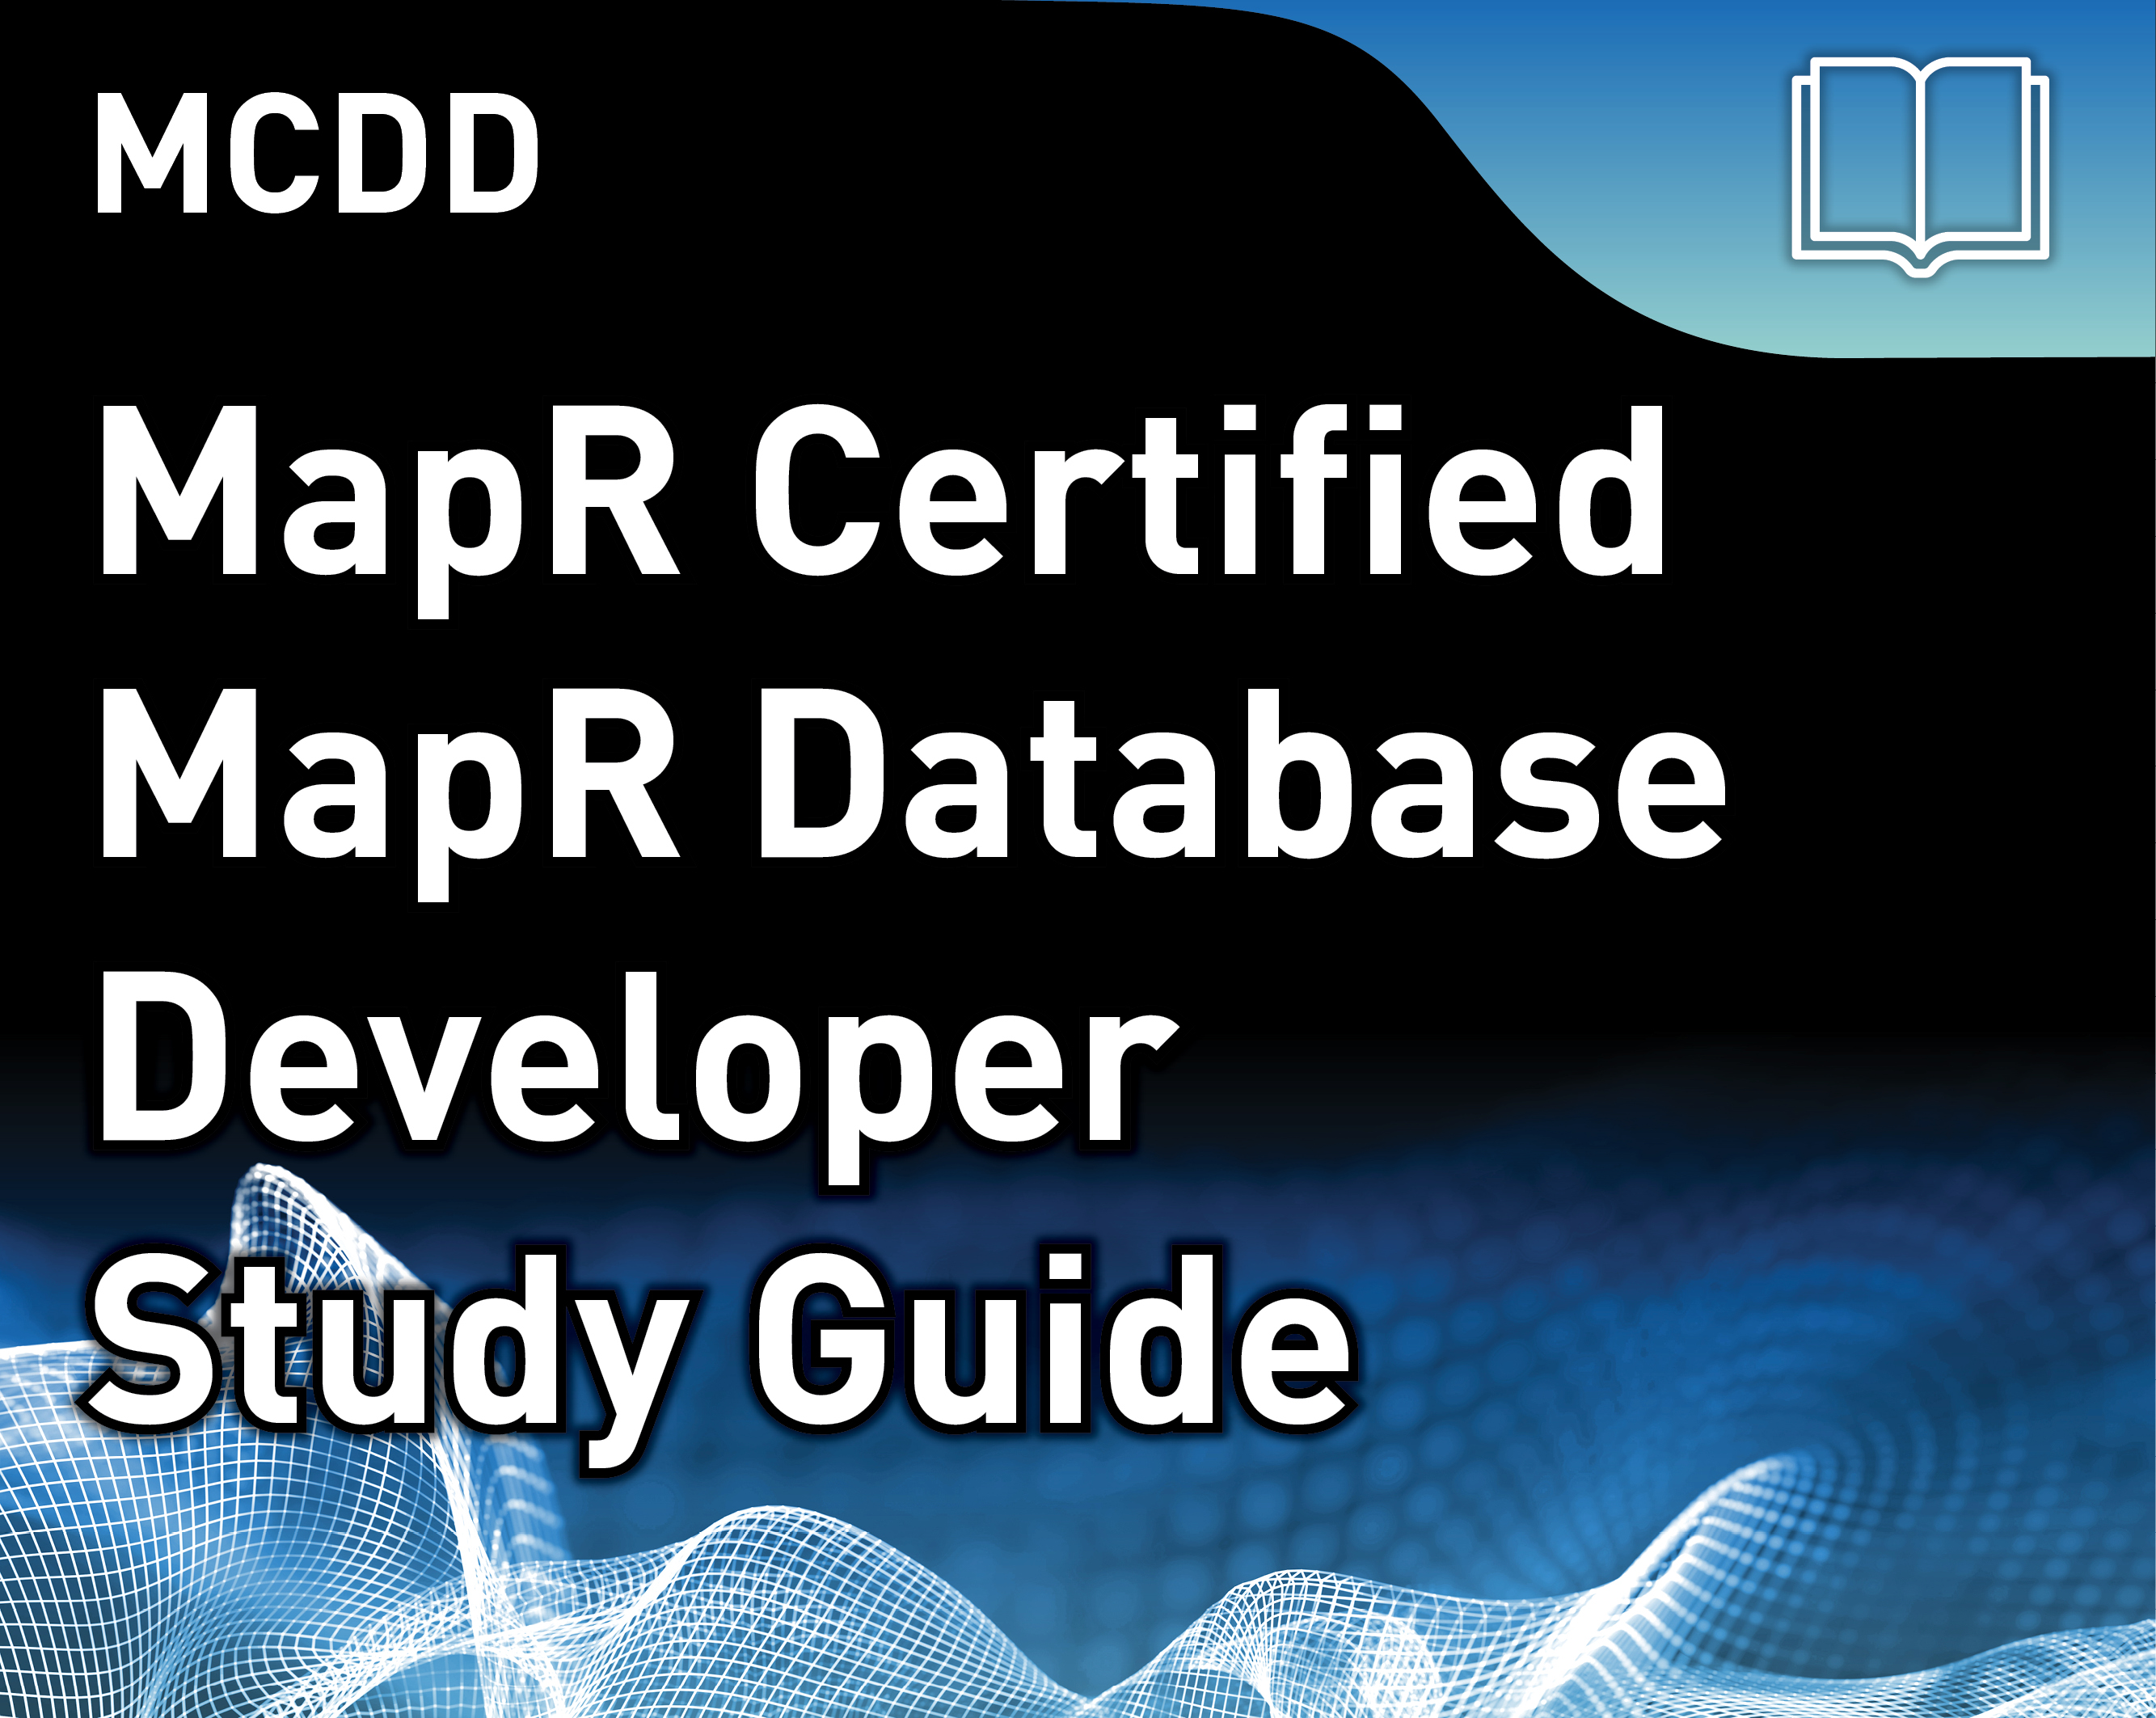 MCDD Study Guide - MapR Certified Database Developer (v6)